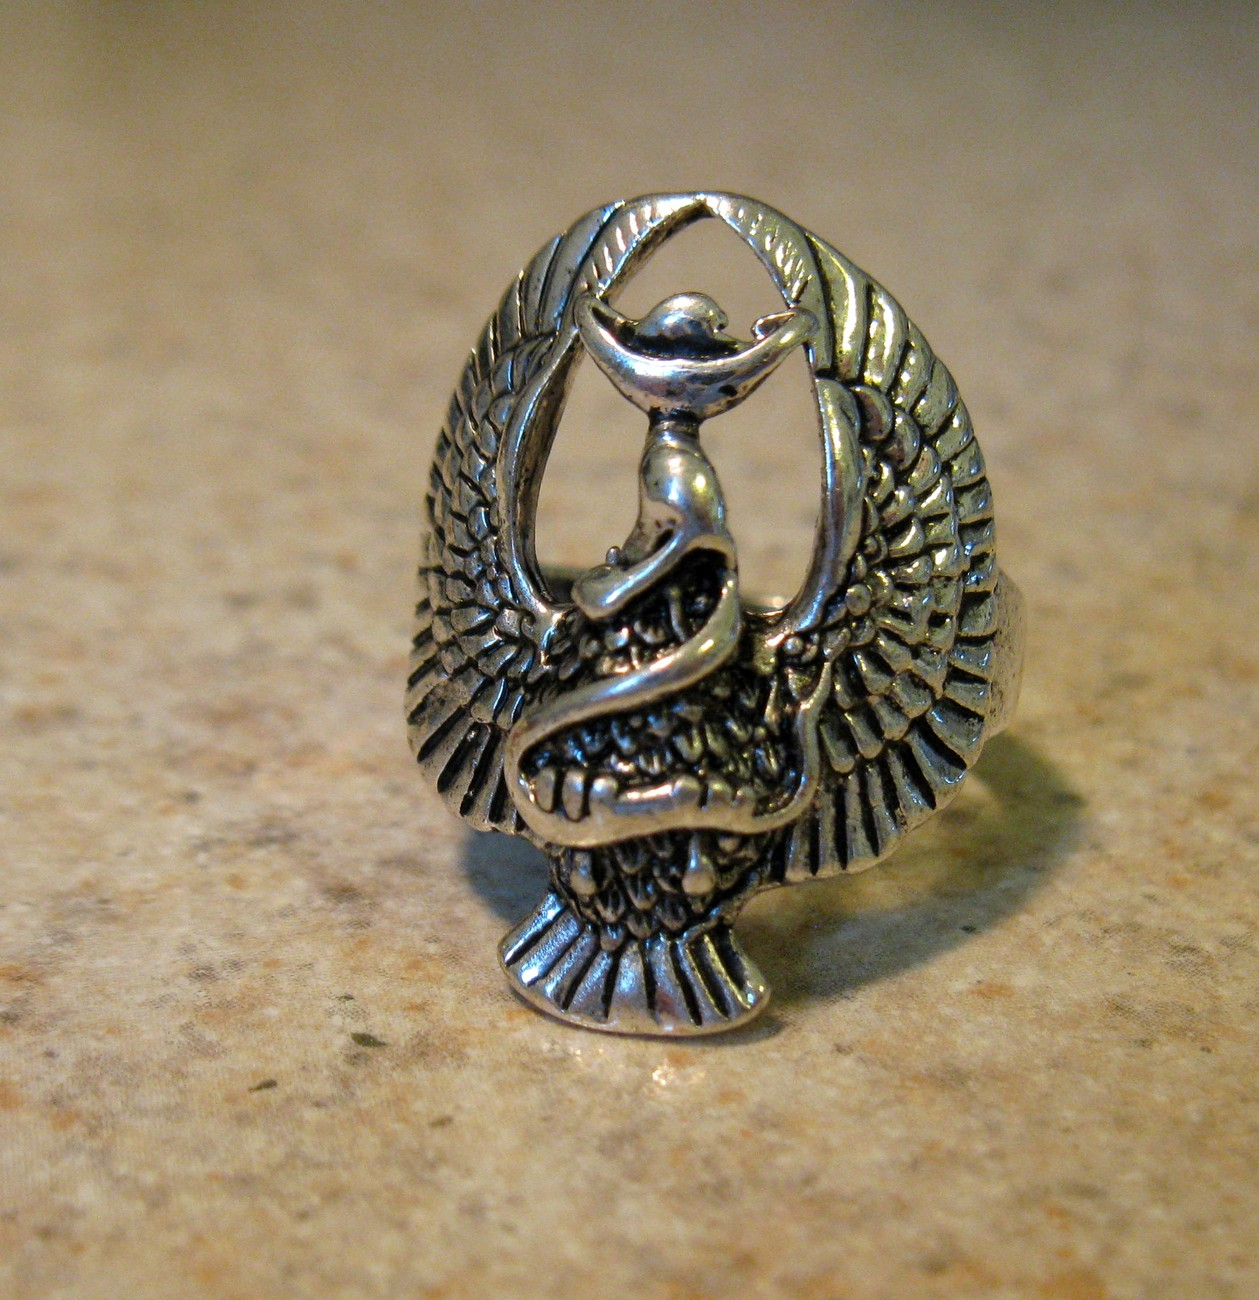 786 eagle ring size 8